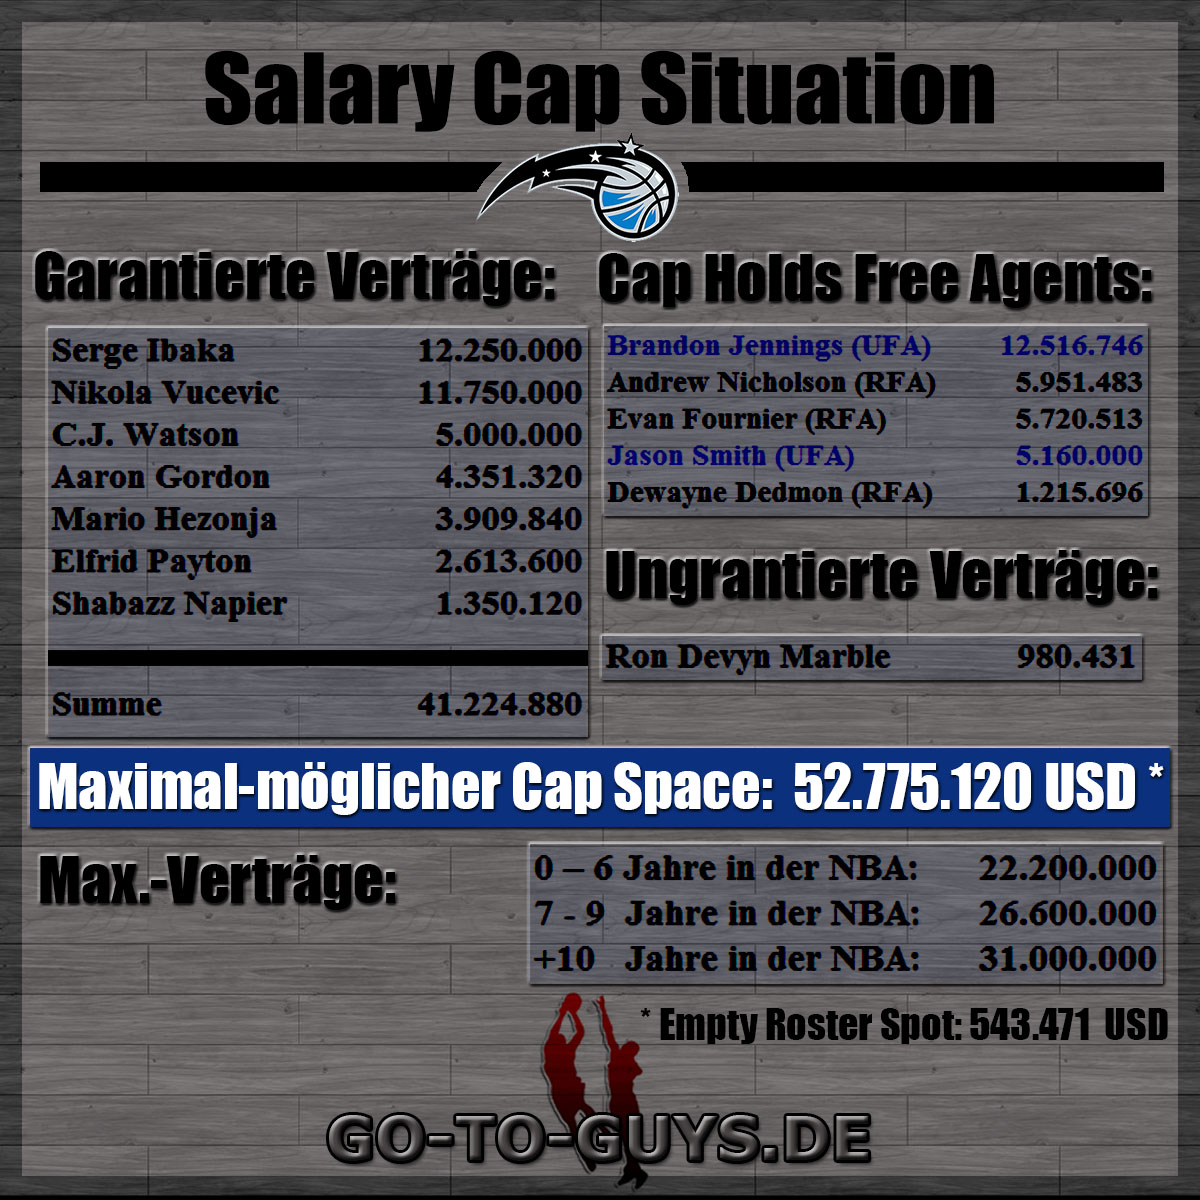 magic_salary2